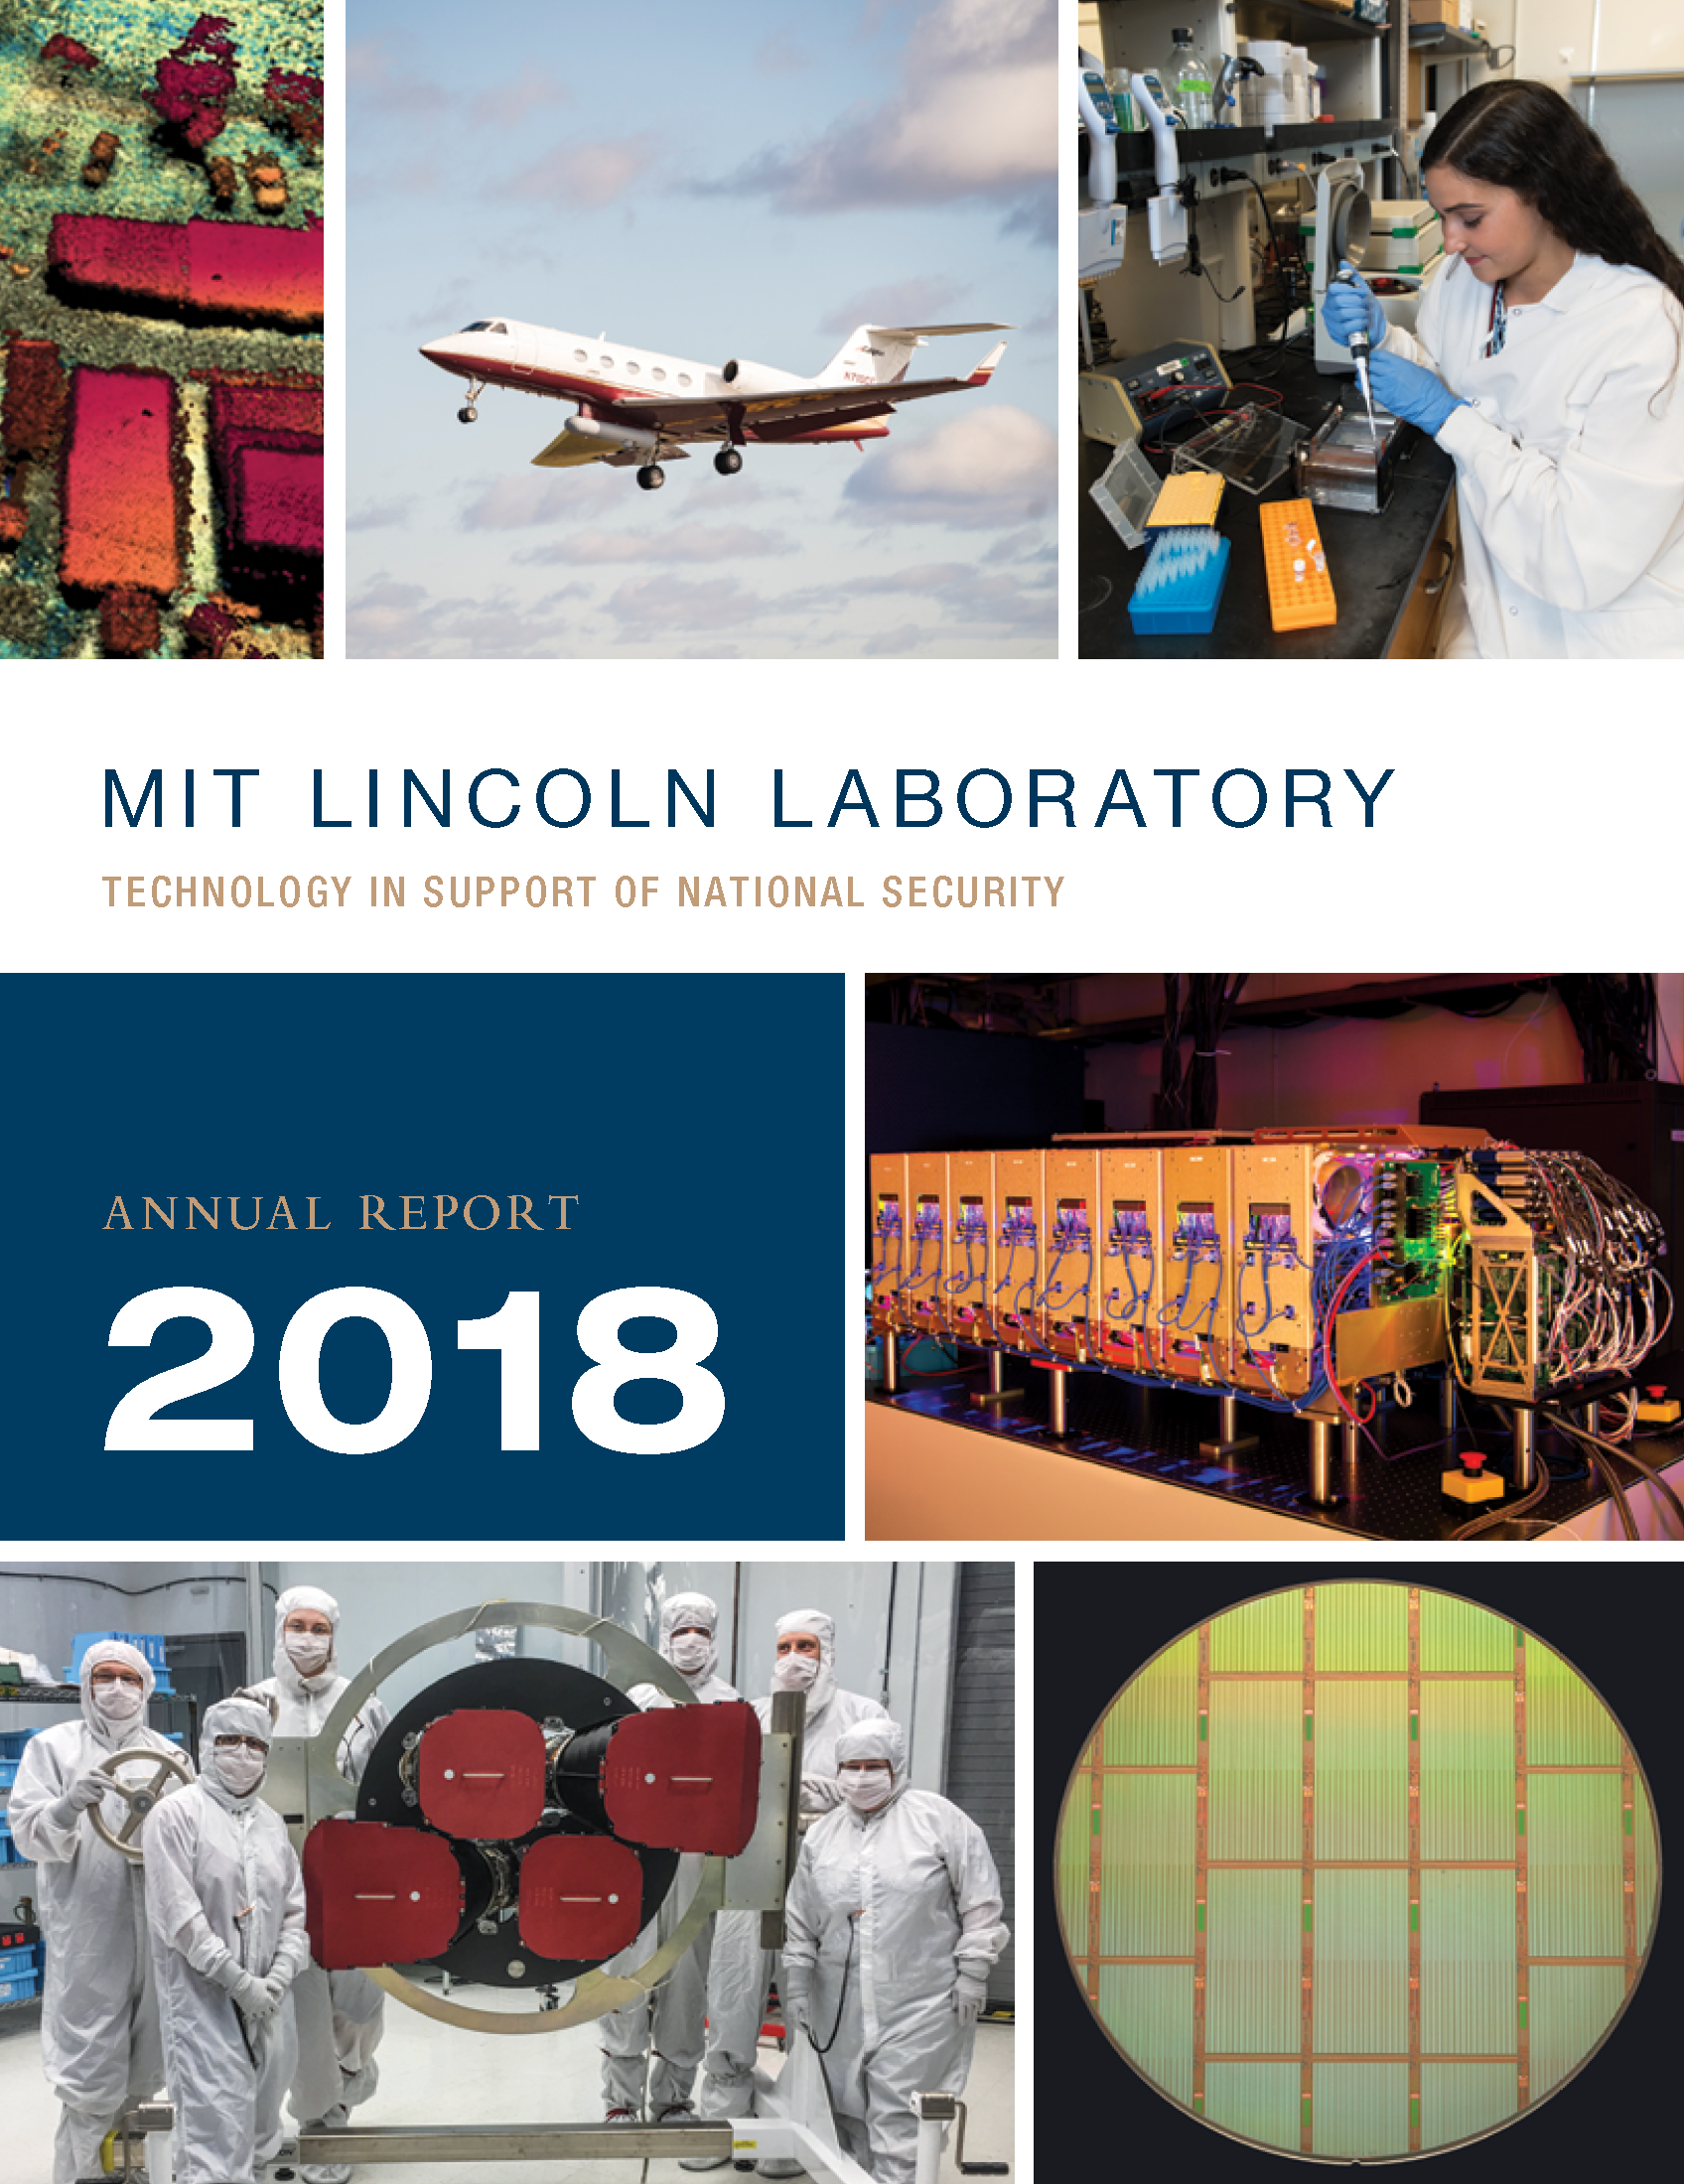 Cover of the 2018 MIT Lincoln Laboratory Annual Report